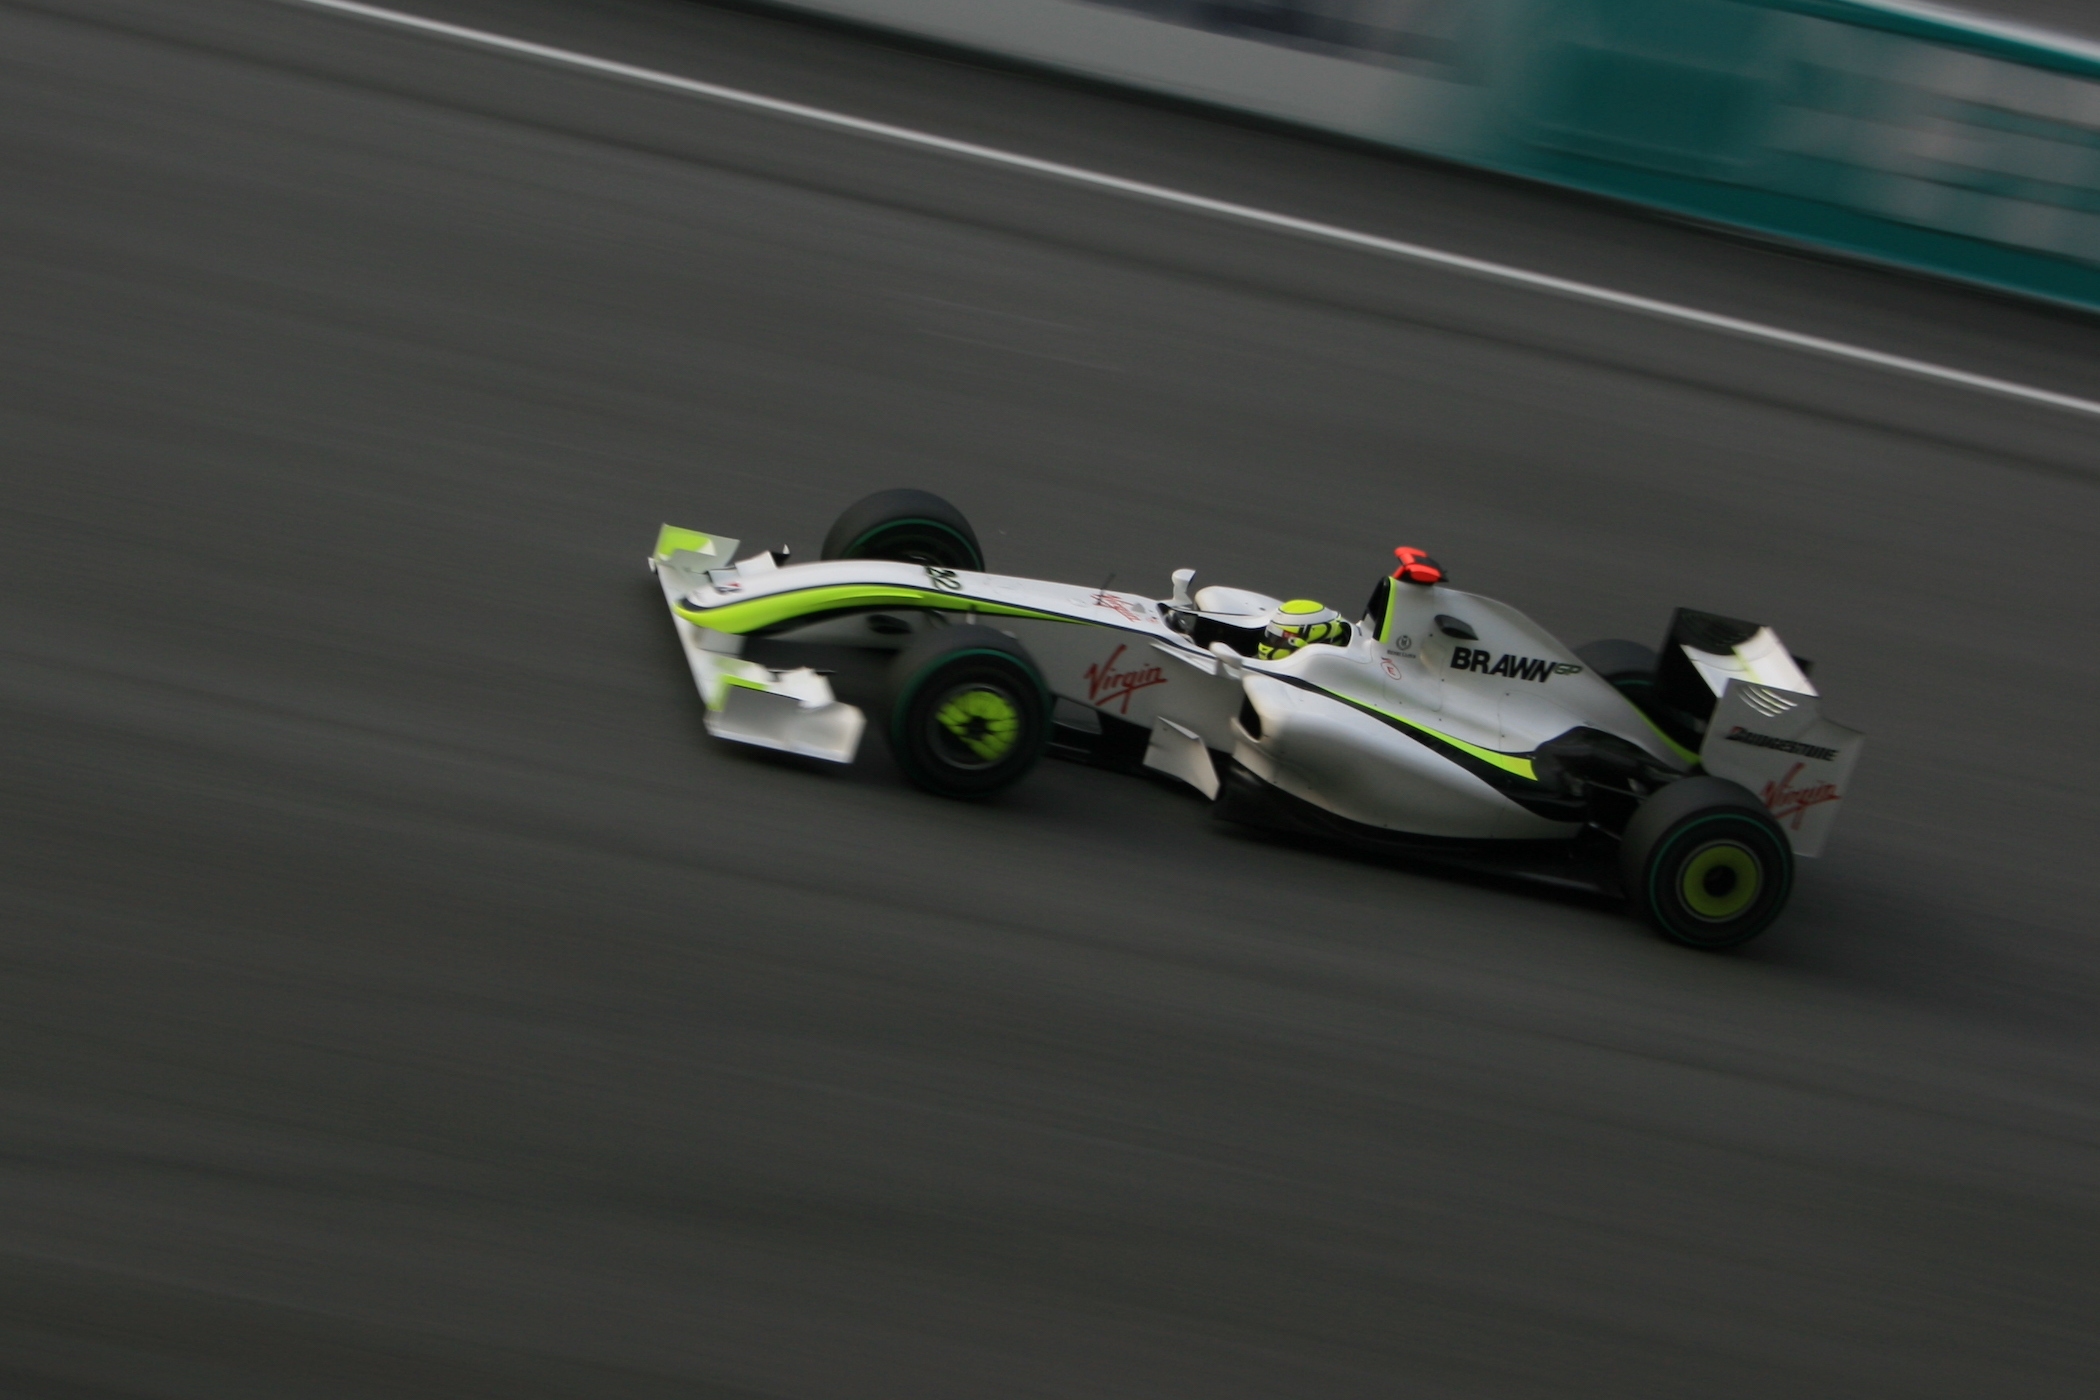 Tips to Improve Your Driving Skills in F1